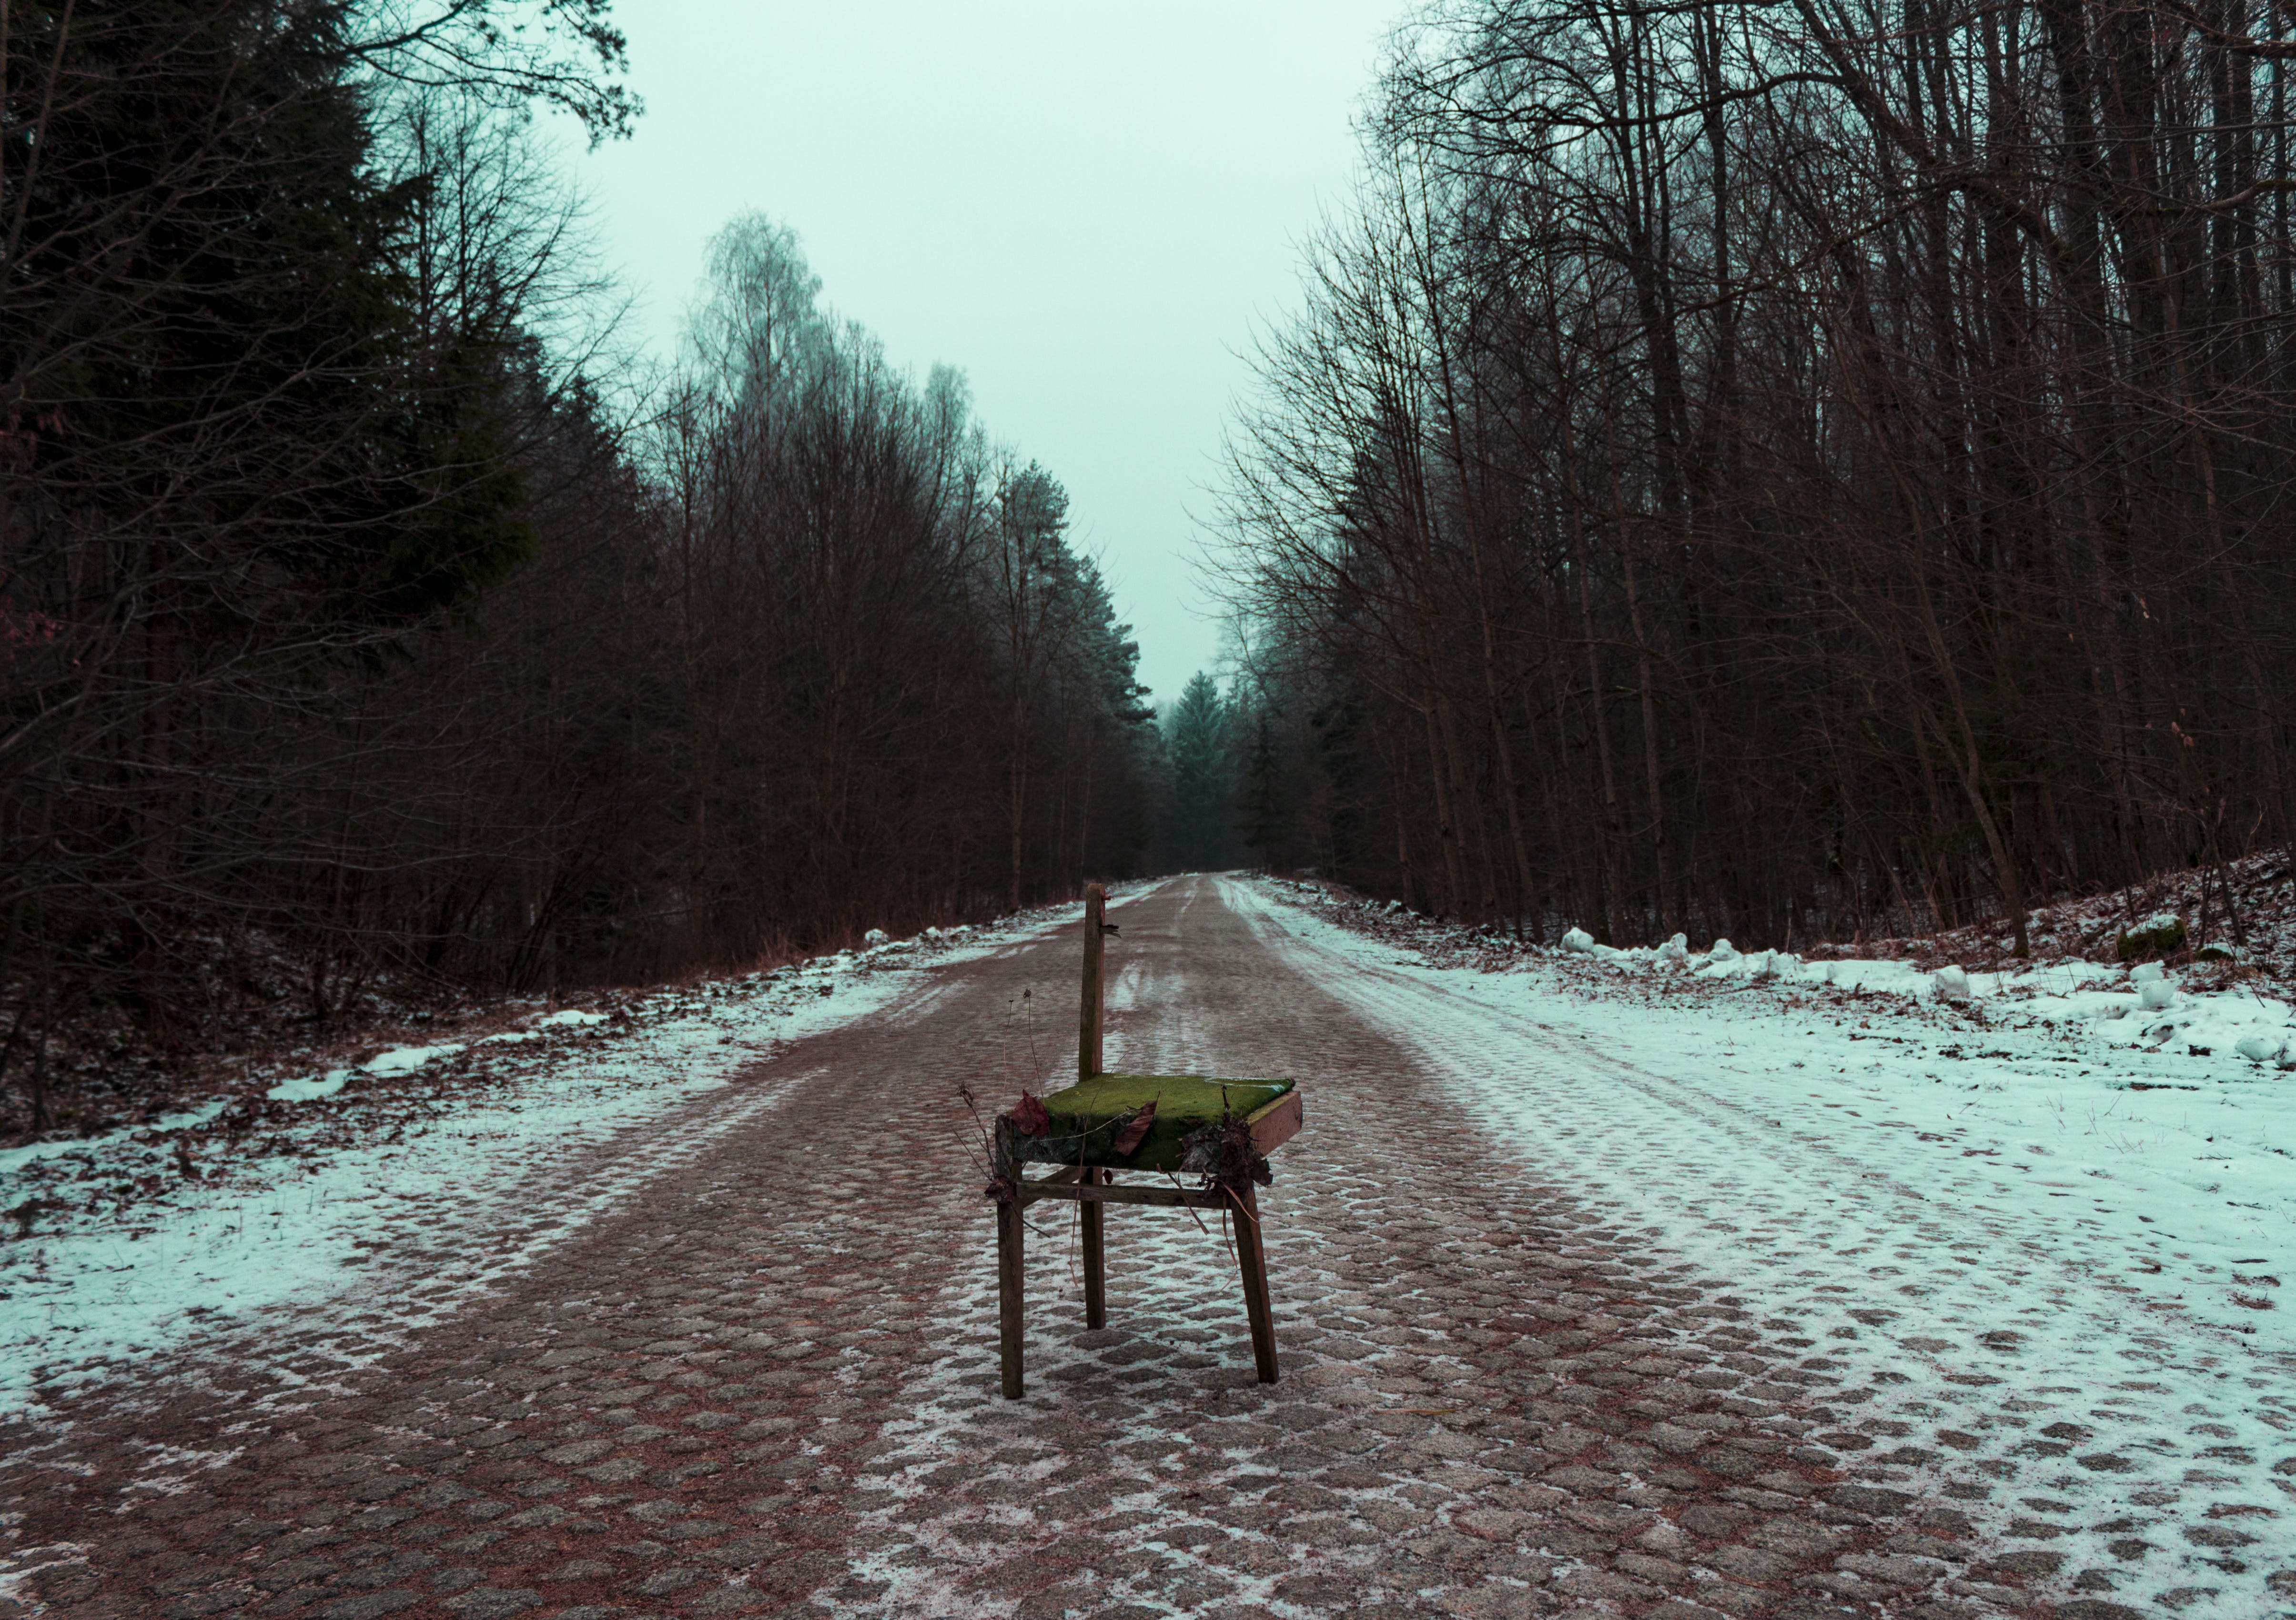 Photography of broken brown chair in the Middle of Road Surrounded by Trees